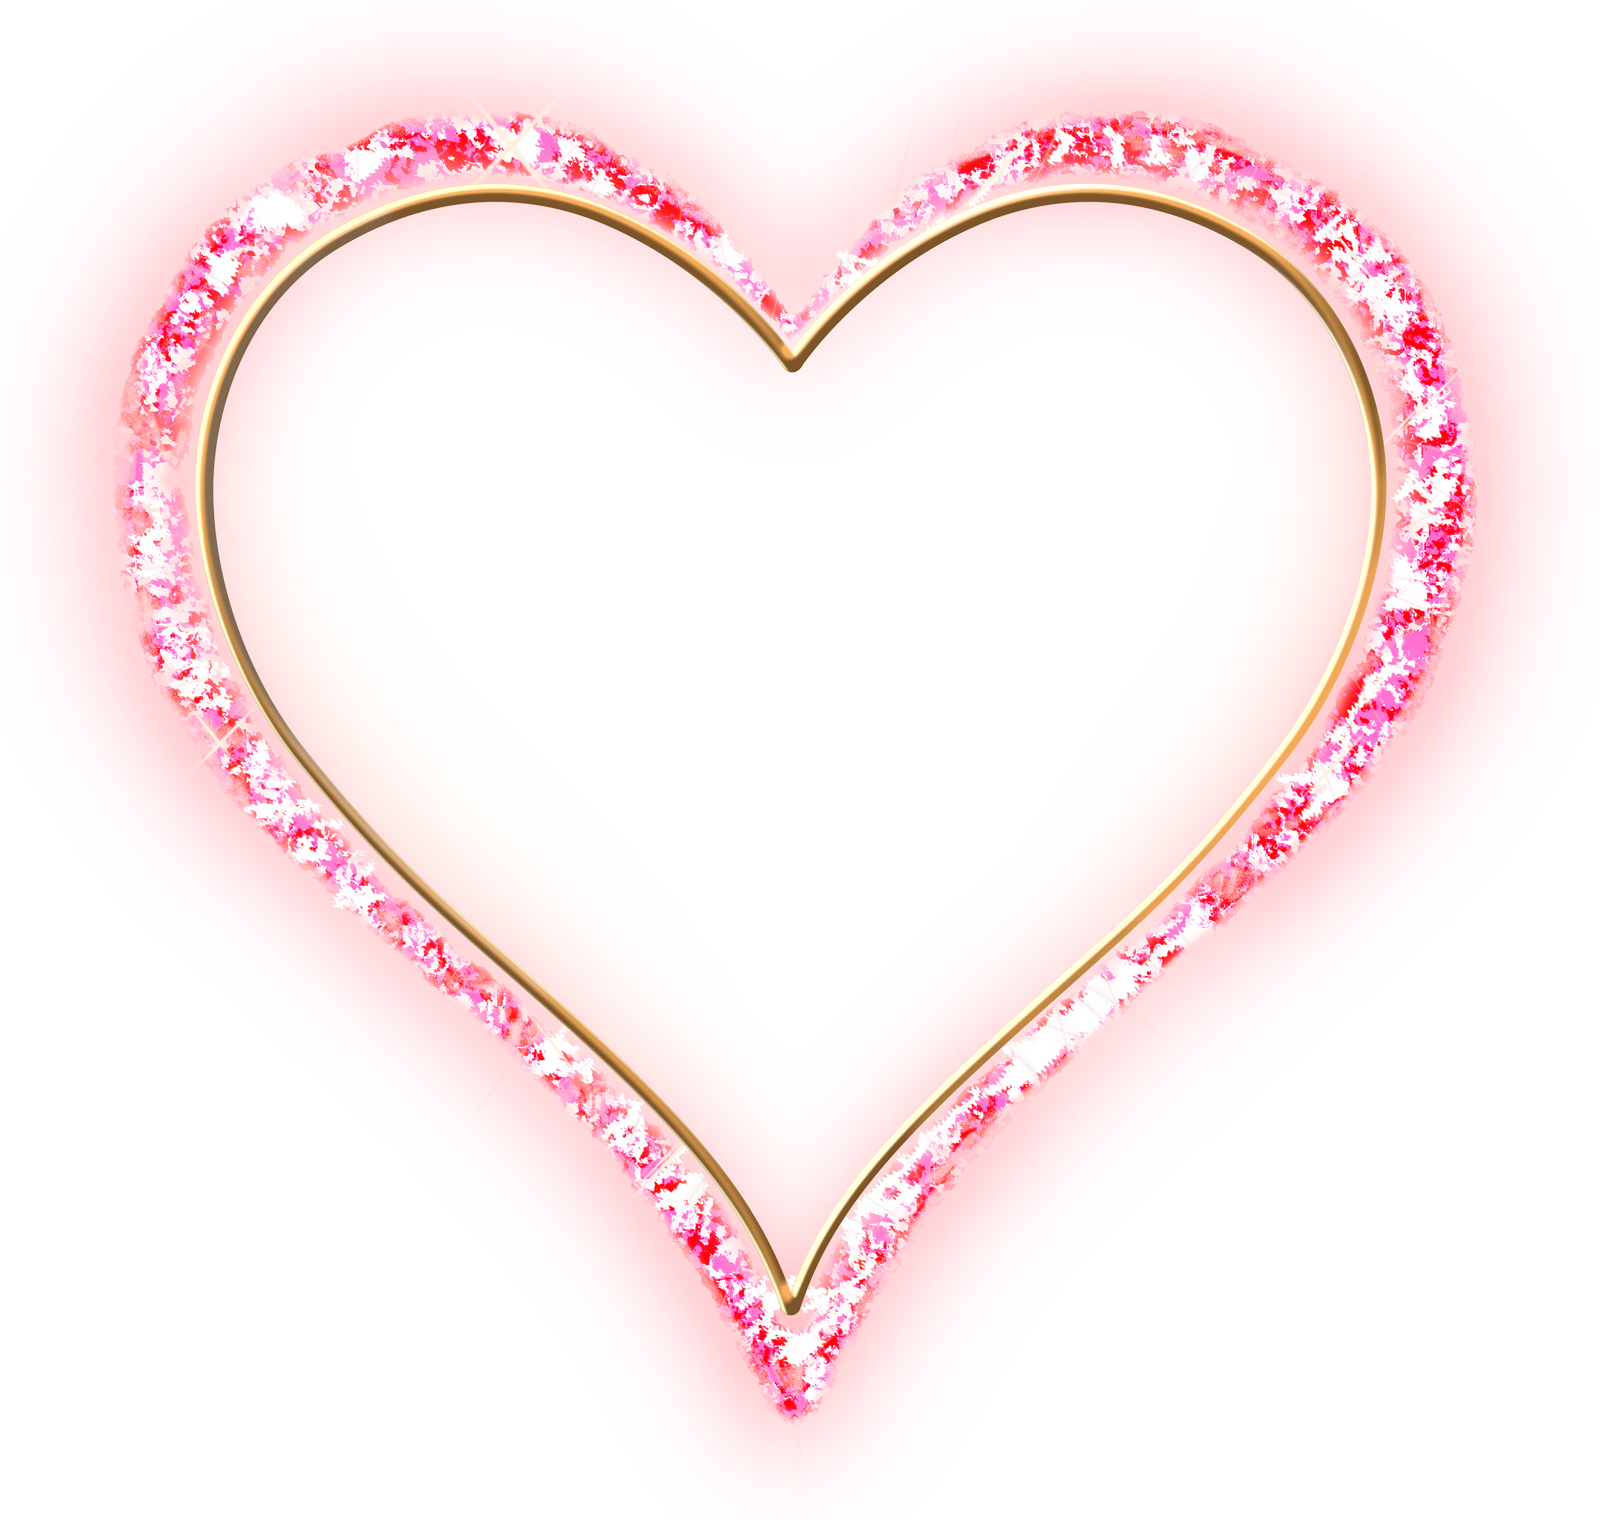 Heart frame png. Pink diamond transparent gold